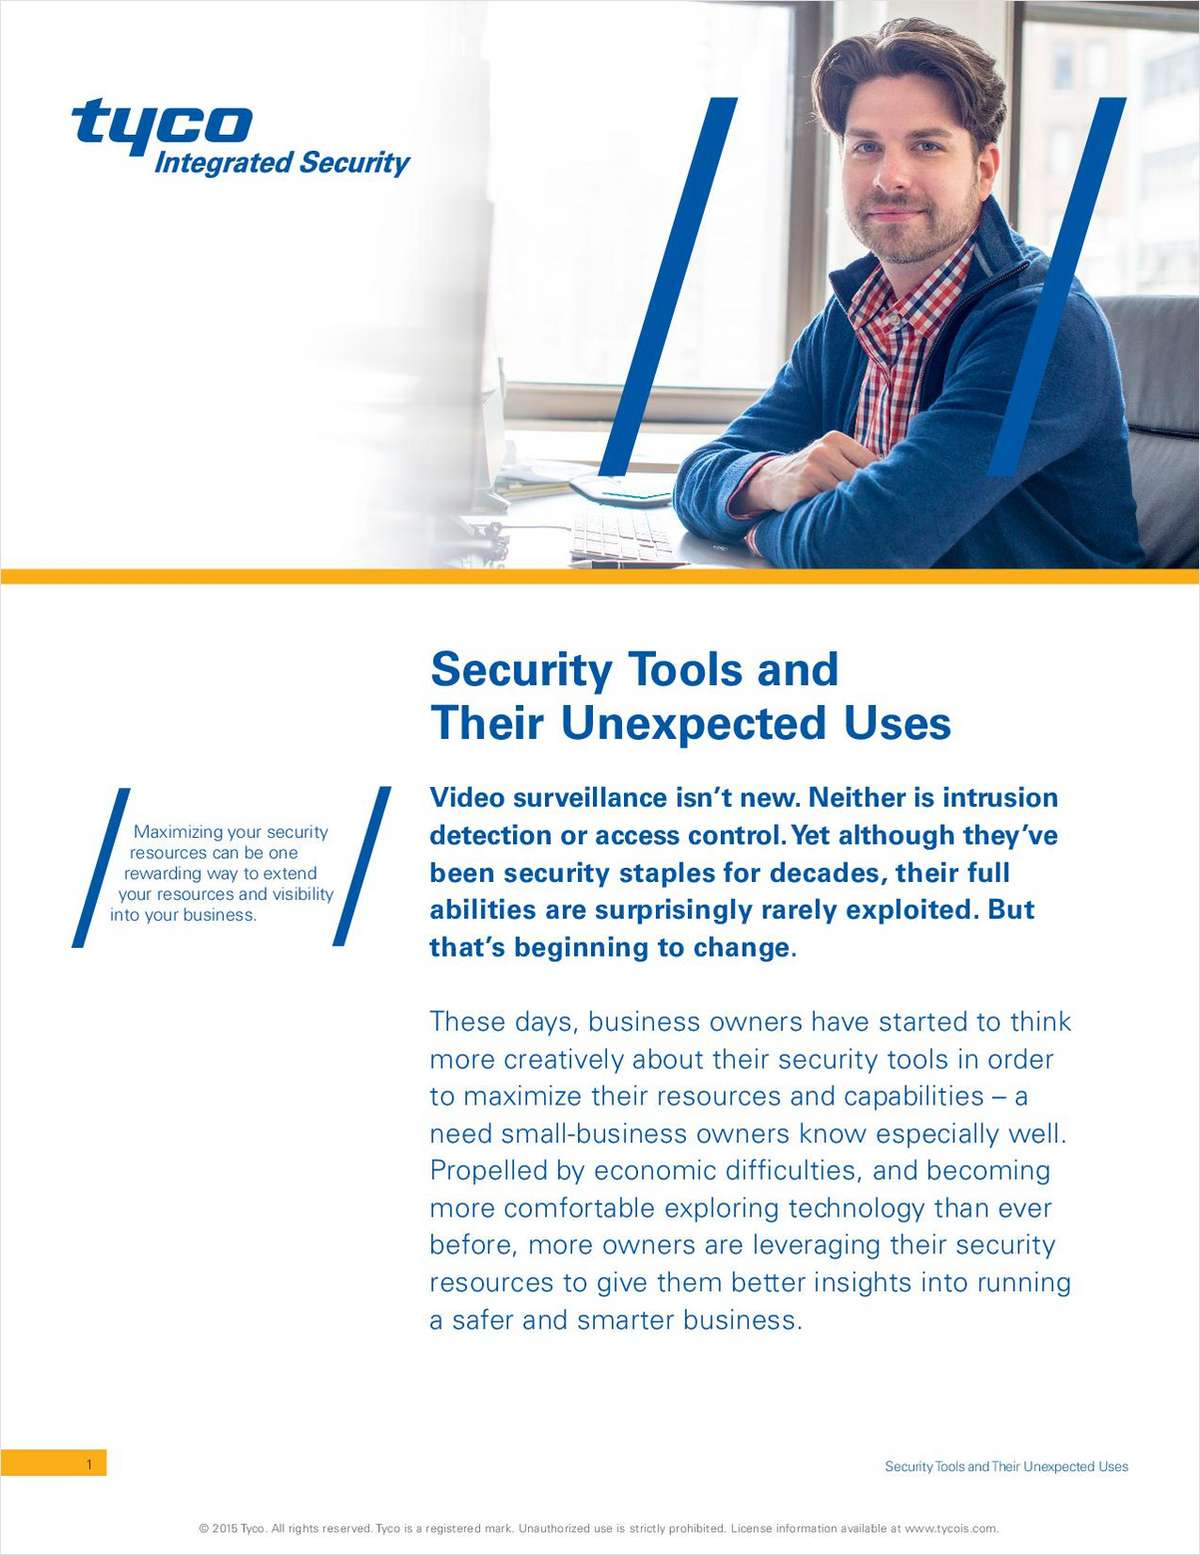 Security Tools and Their Unexpected Uses